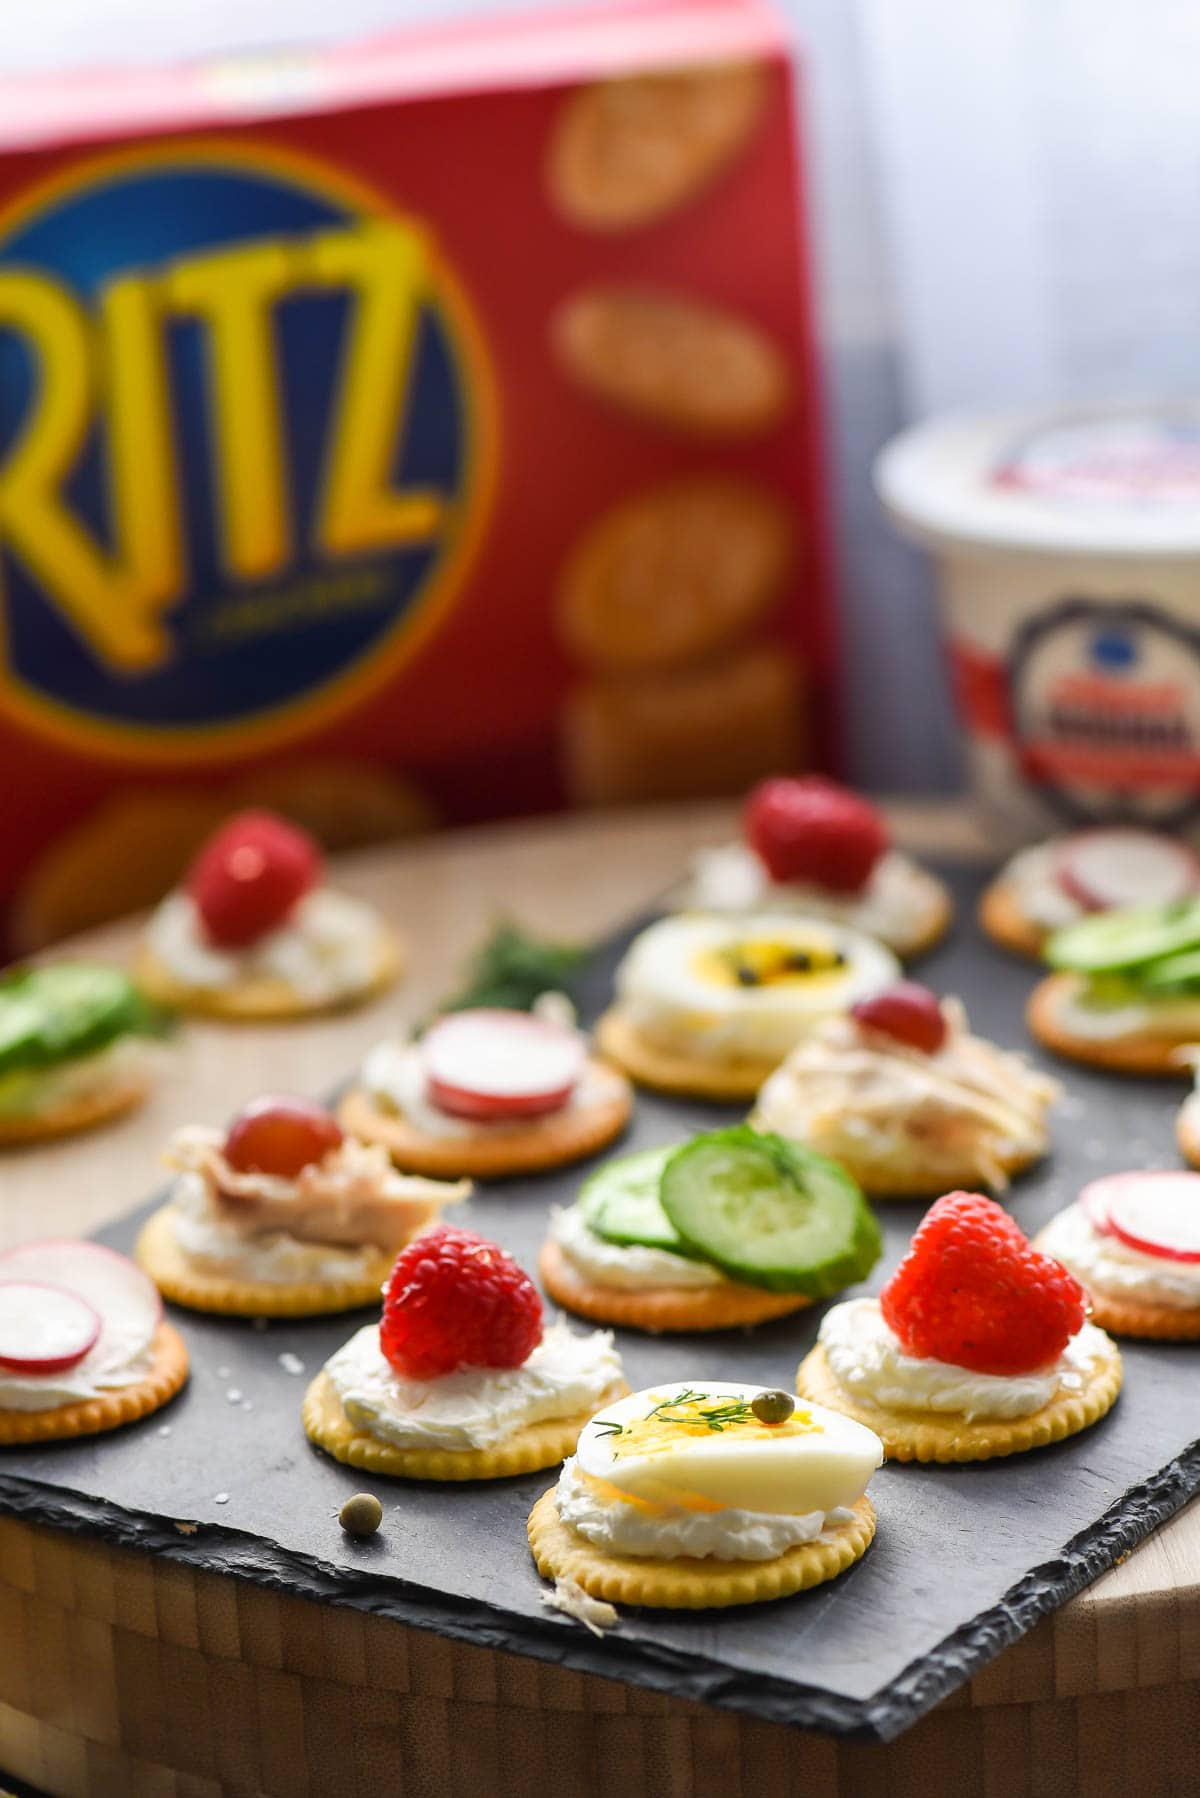 Ritz crackers topped with cream cheese and sweet and savory toppings